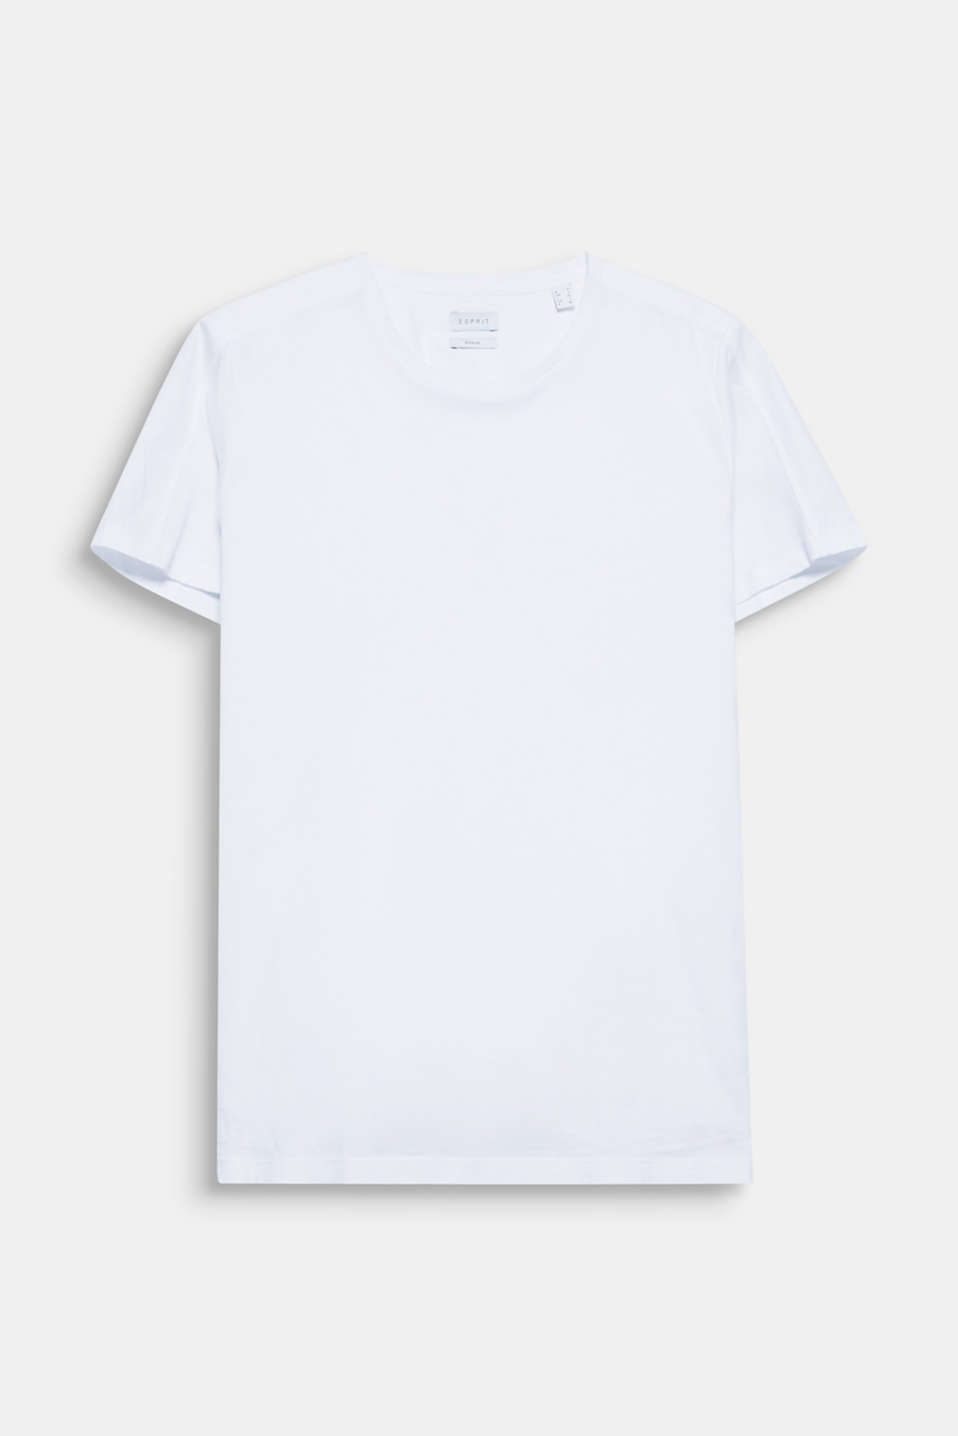 The exciting combination of textured jersey and the smooth fabric used for the shoulder area makes this T-shirt a high-quality basic.